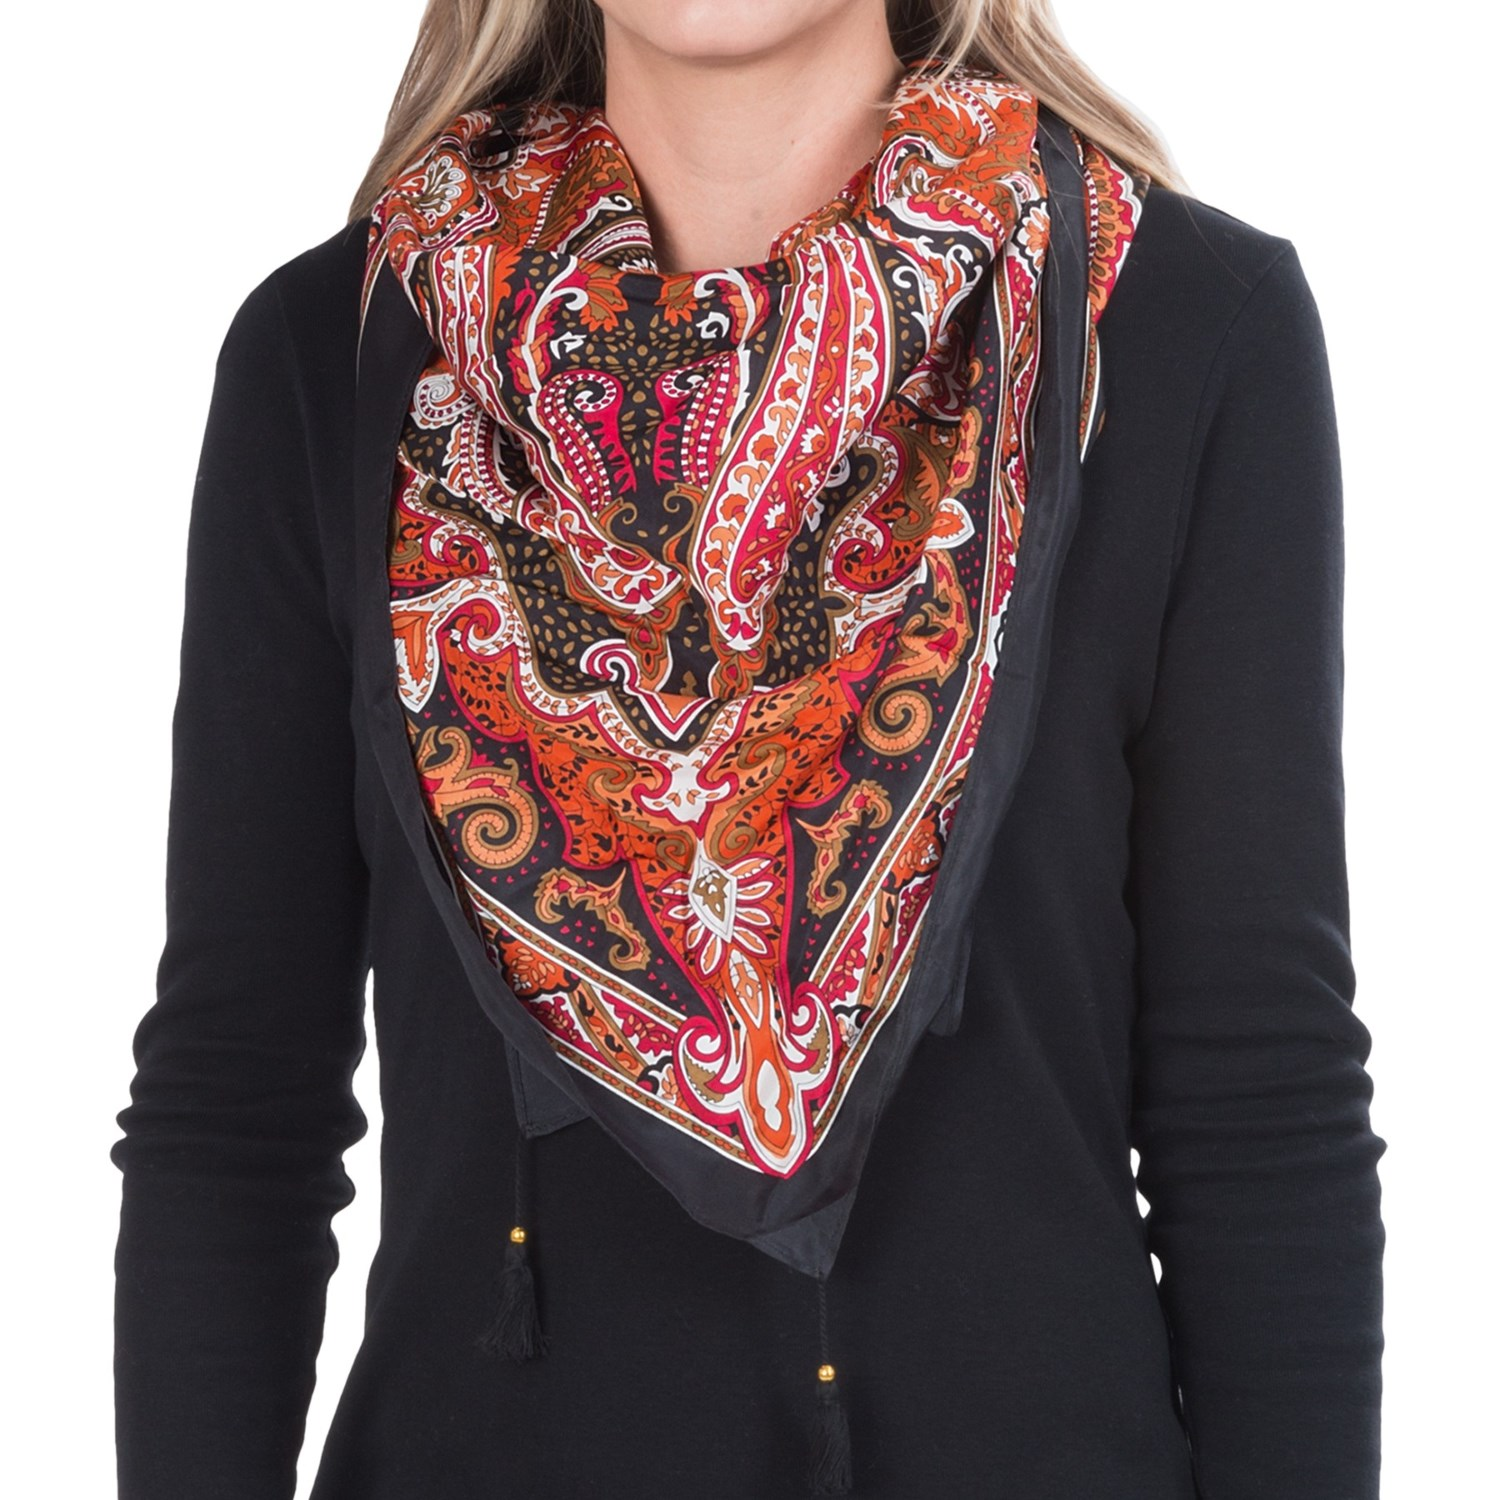 paisley black single women Buy women green paisley silk-blend velvet scarf (black): shop top fashion  brands accessories at amazoncom ✓ free delivery and returns possible on .